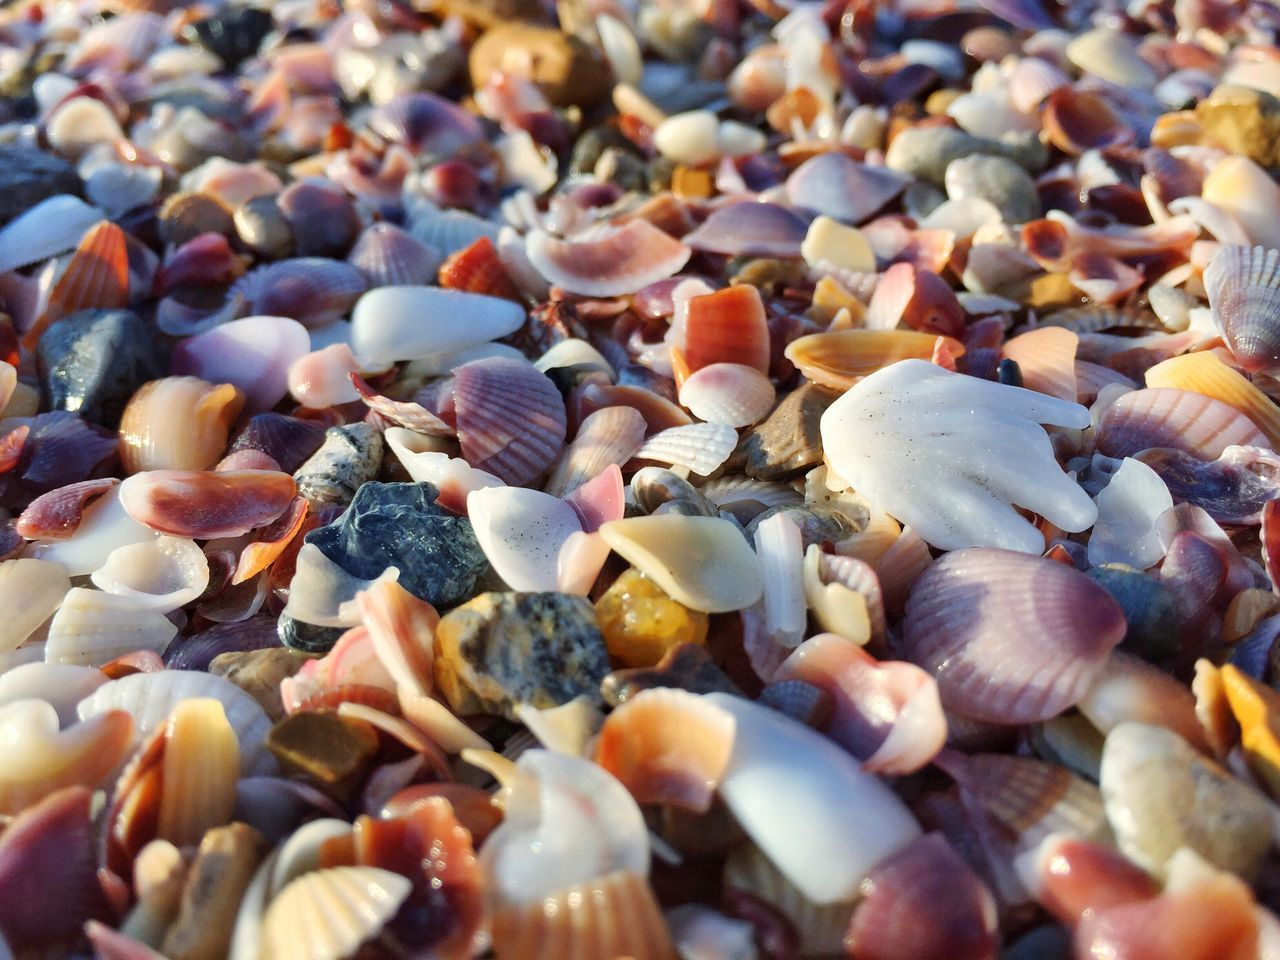 full frame, pebble, backgrounds, beach, abundance, no people, large group of objects, seashell, nature, outdoors, day, close-up, pebble beach, animal themes